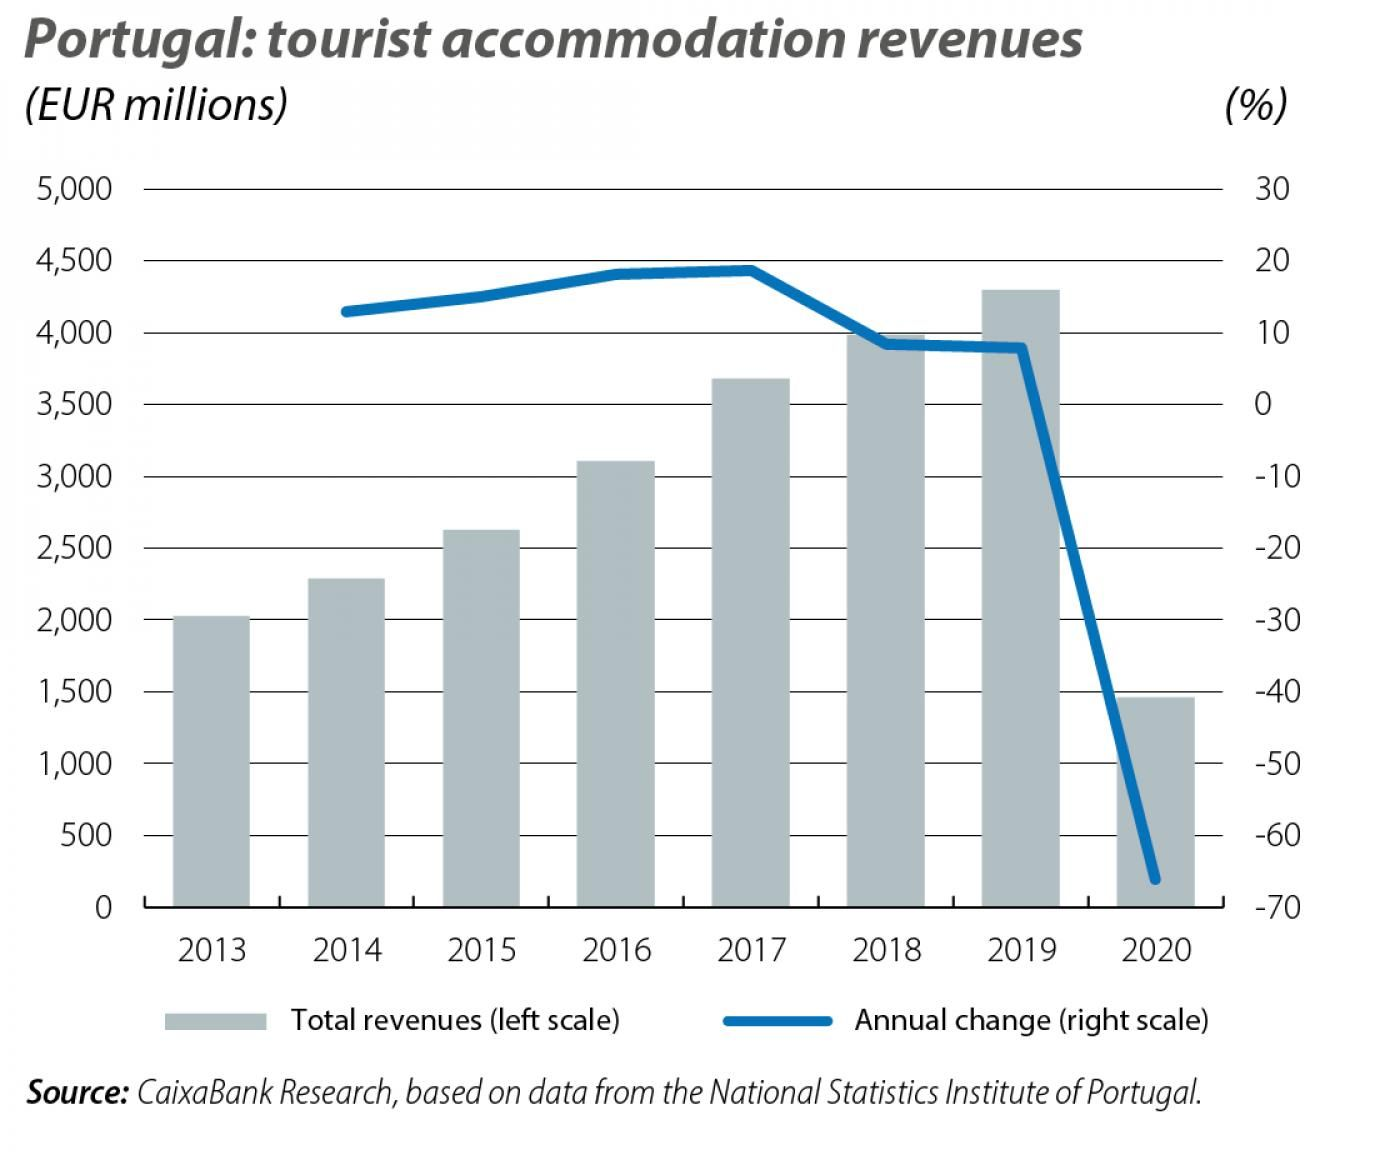 Portugal: tourist accommodation revenues